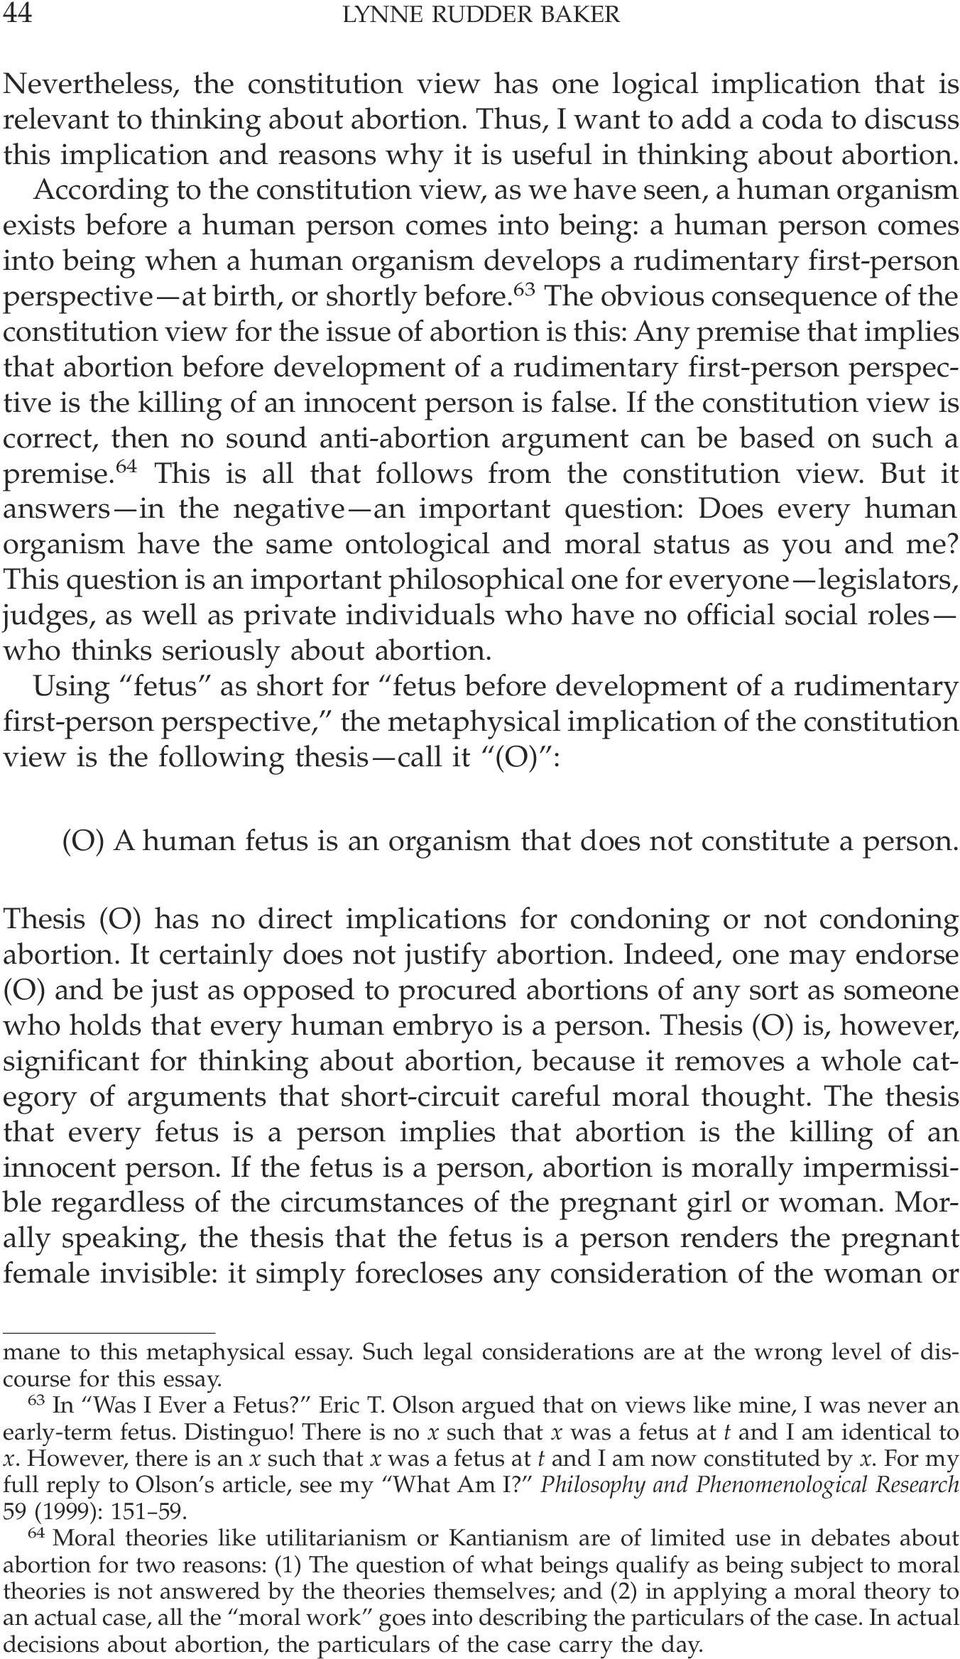 According to the constitution view, as we have seen, a human organism exists before a human person comes into being: a human person comes into being when a human organism develops a rudimentary